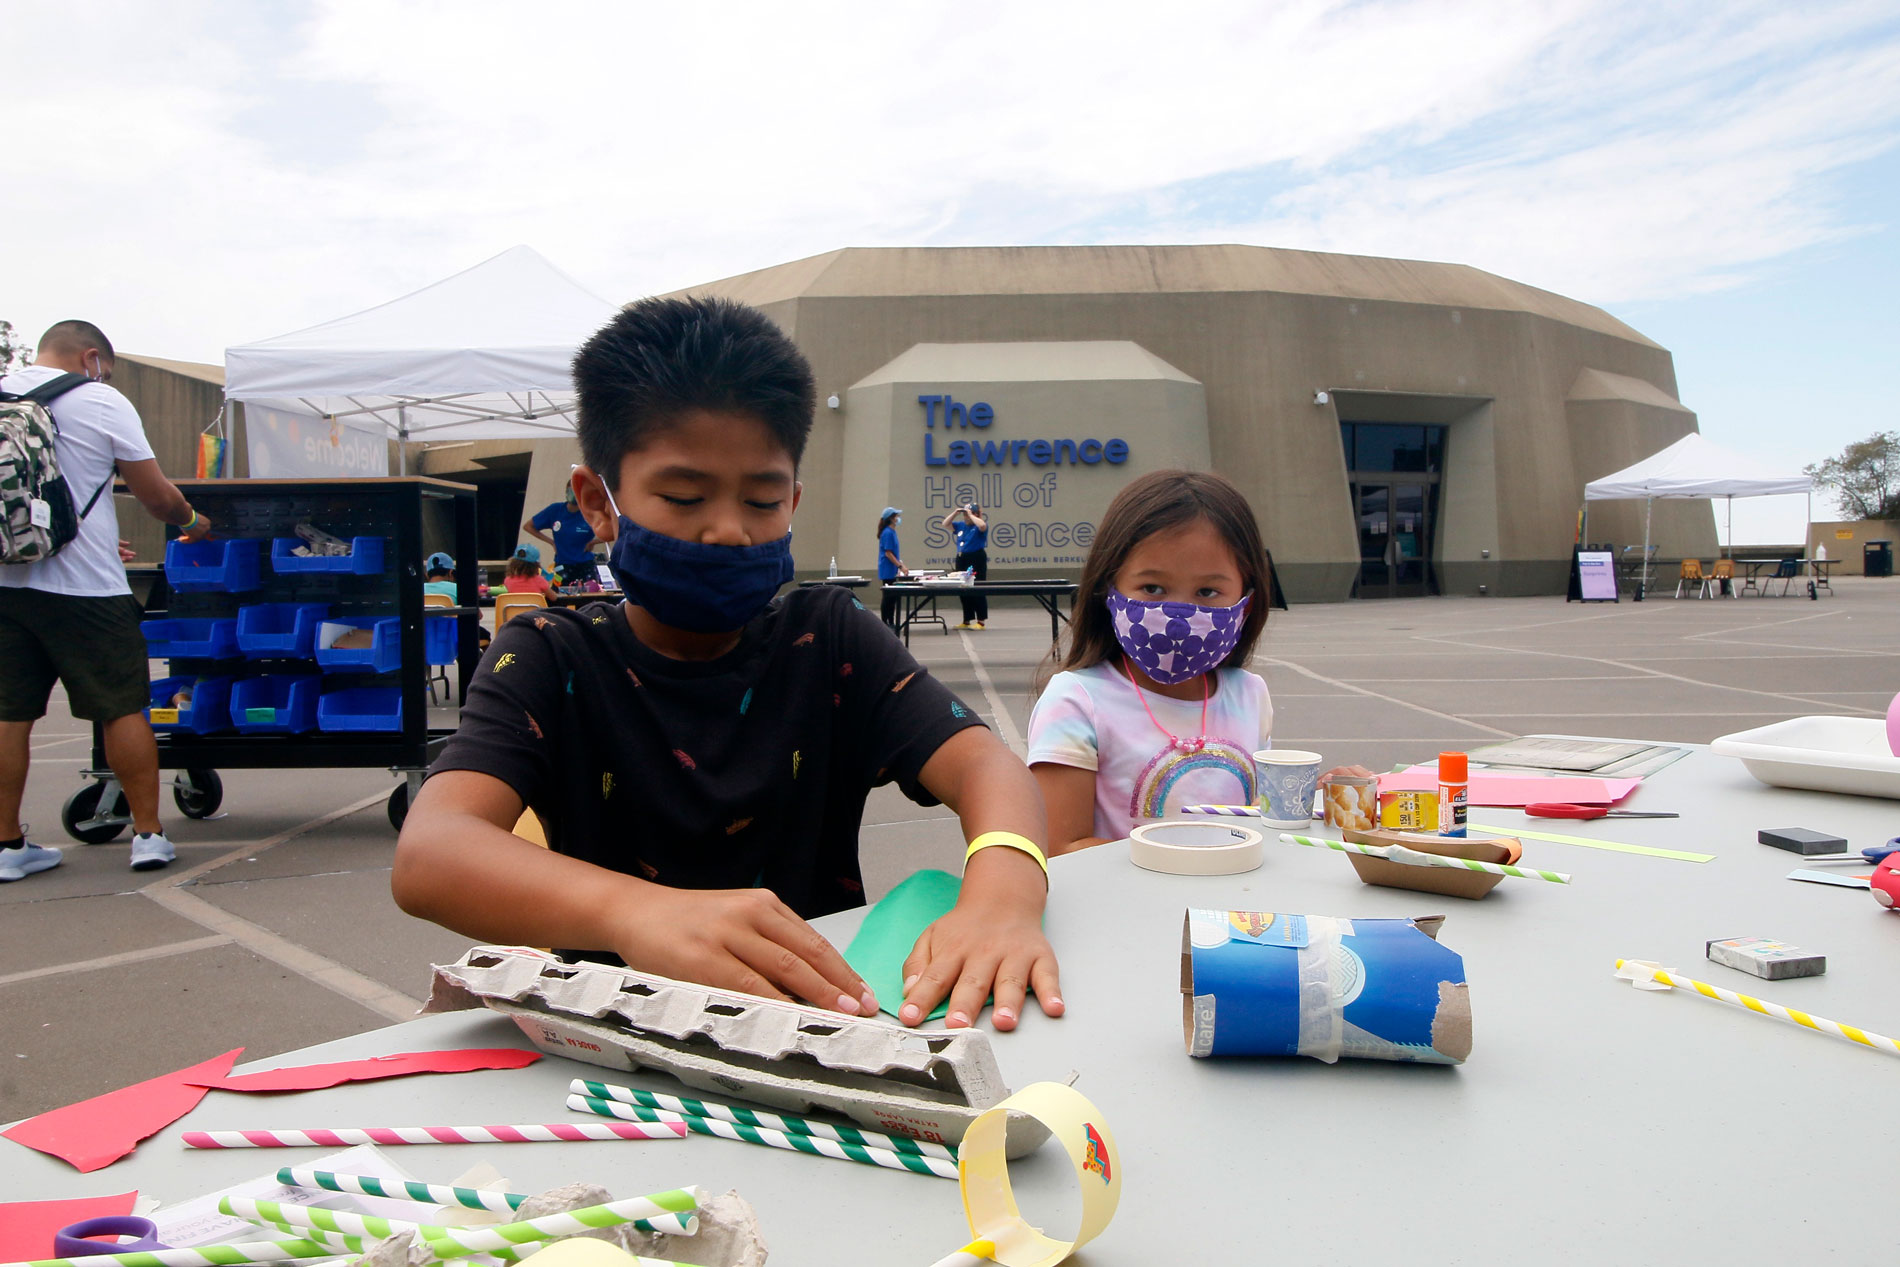 Two children constructing paper sculptures during Summer Fundays at The Lawrence